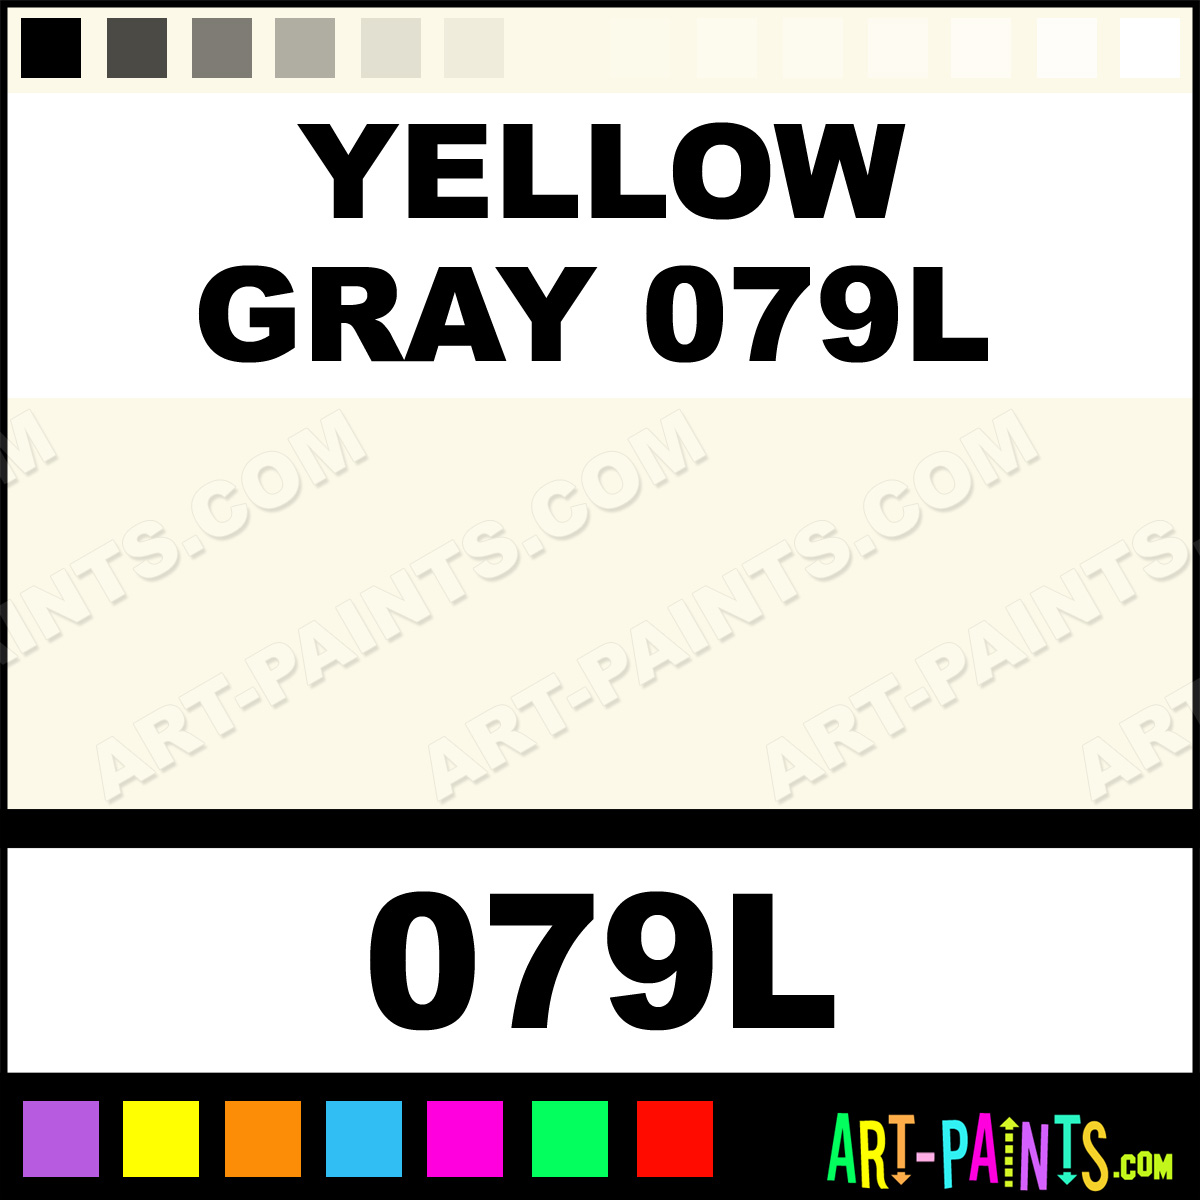 Yellow gray 079l soft form pastel paints 079l yellow for Yellow and gray paint